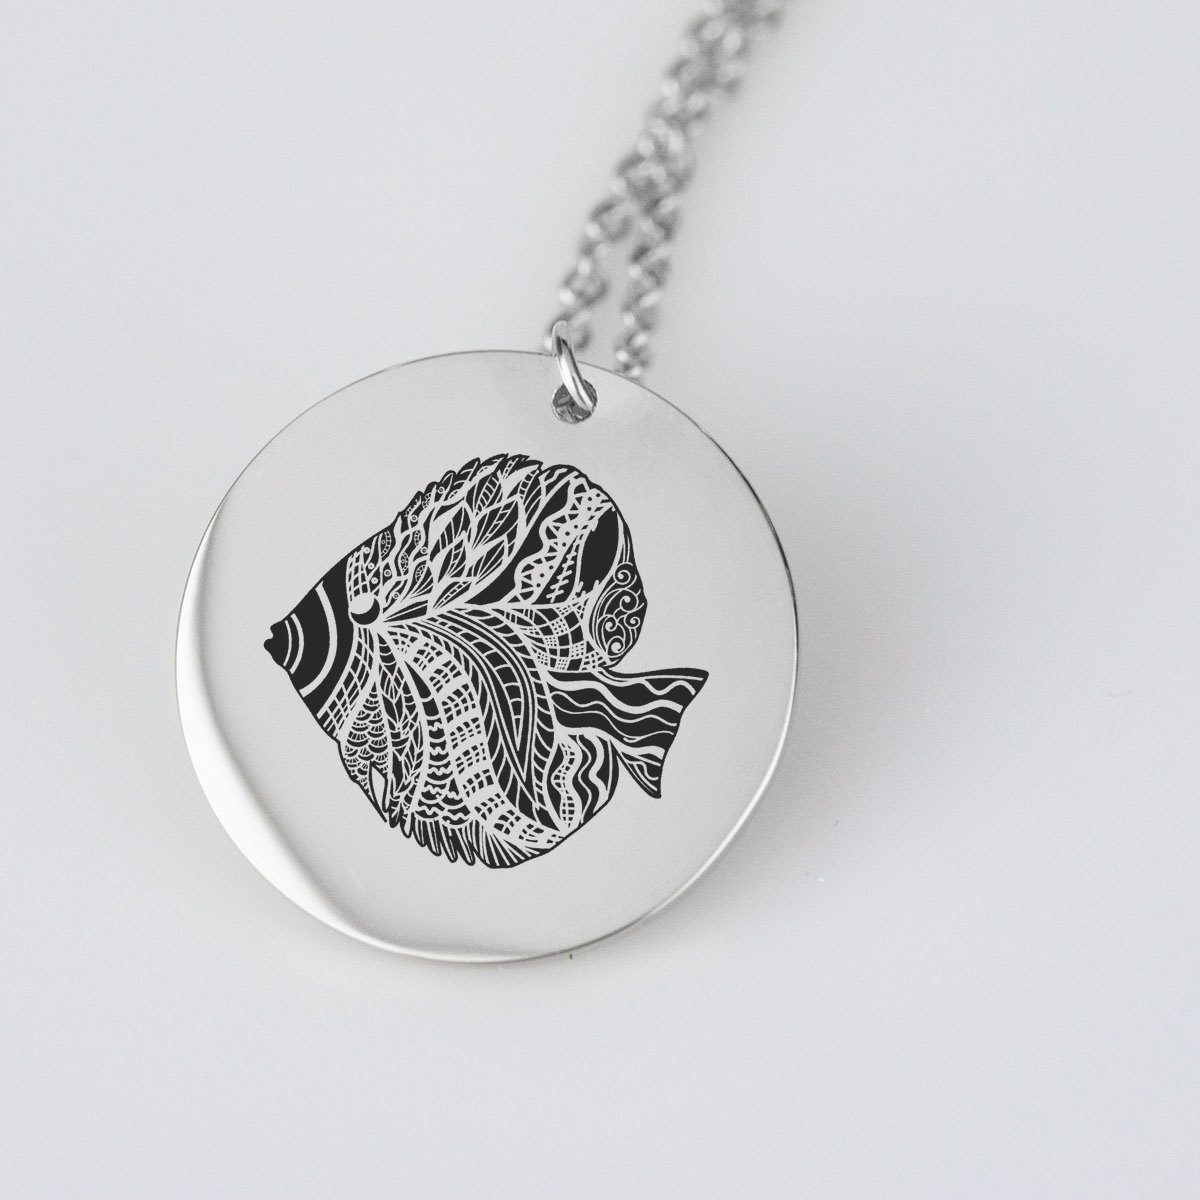 Angel Fish Silhouette Charm Necklace